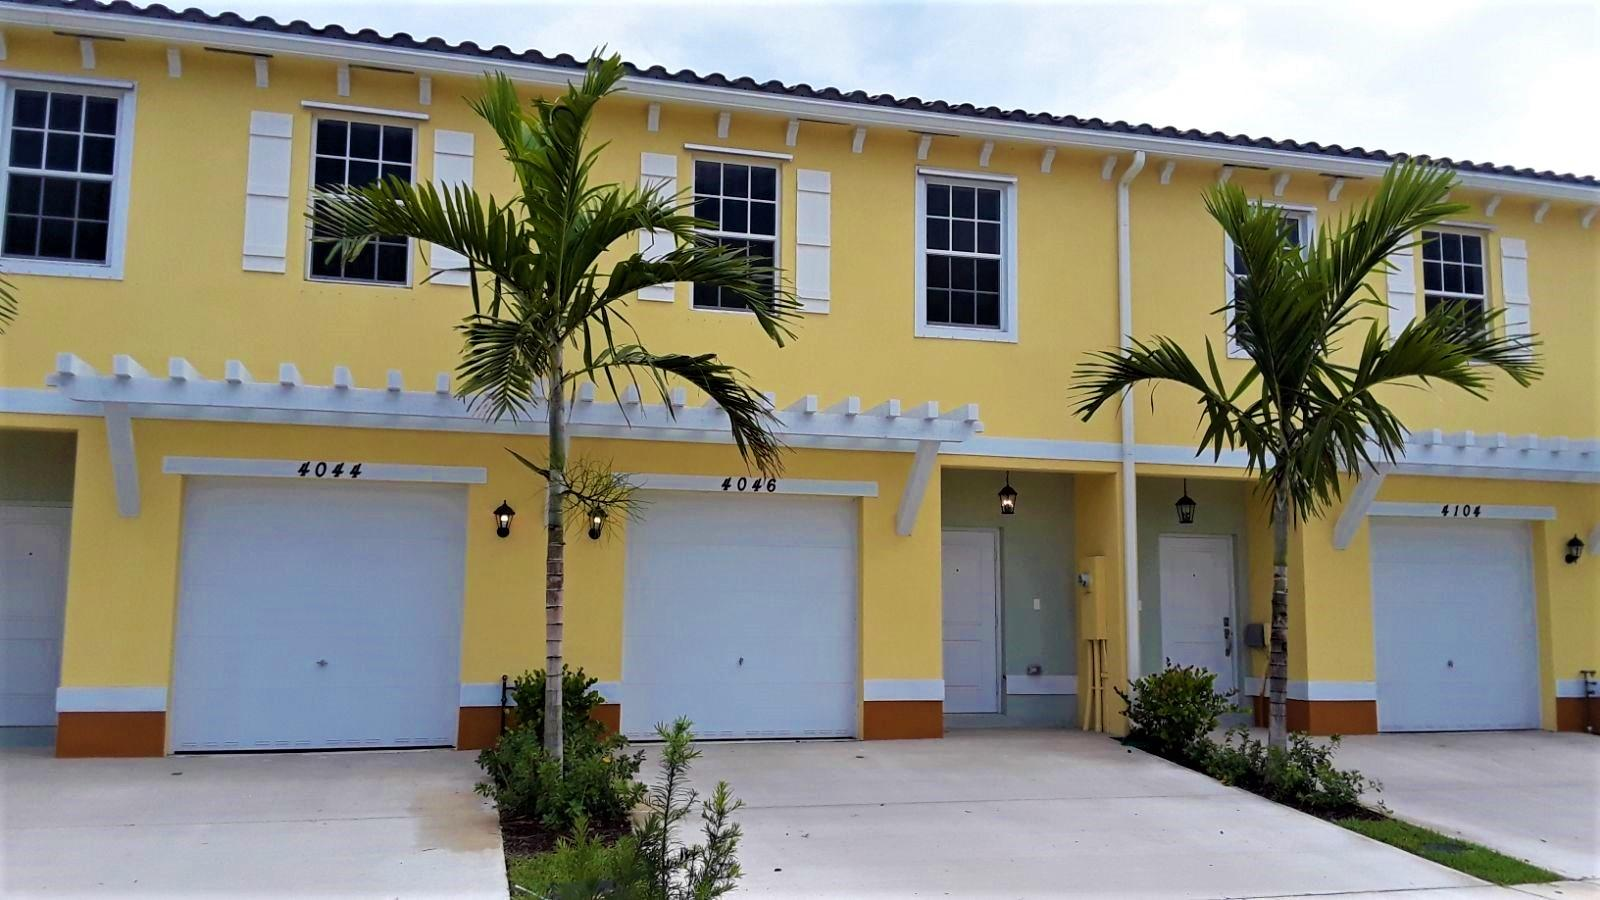 4046 10th Place, Lauderhill, Florida 33313, 3 Bedrooms Bedrooms, ,2.1 BathroomsBathrooms,A,Townhouse,10th,RX-10528163